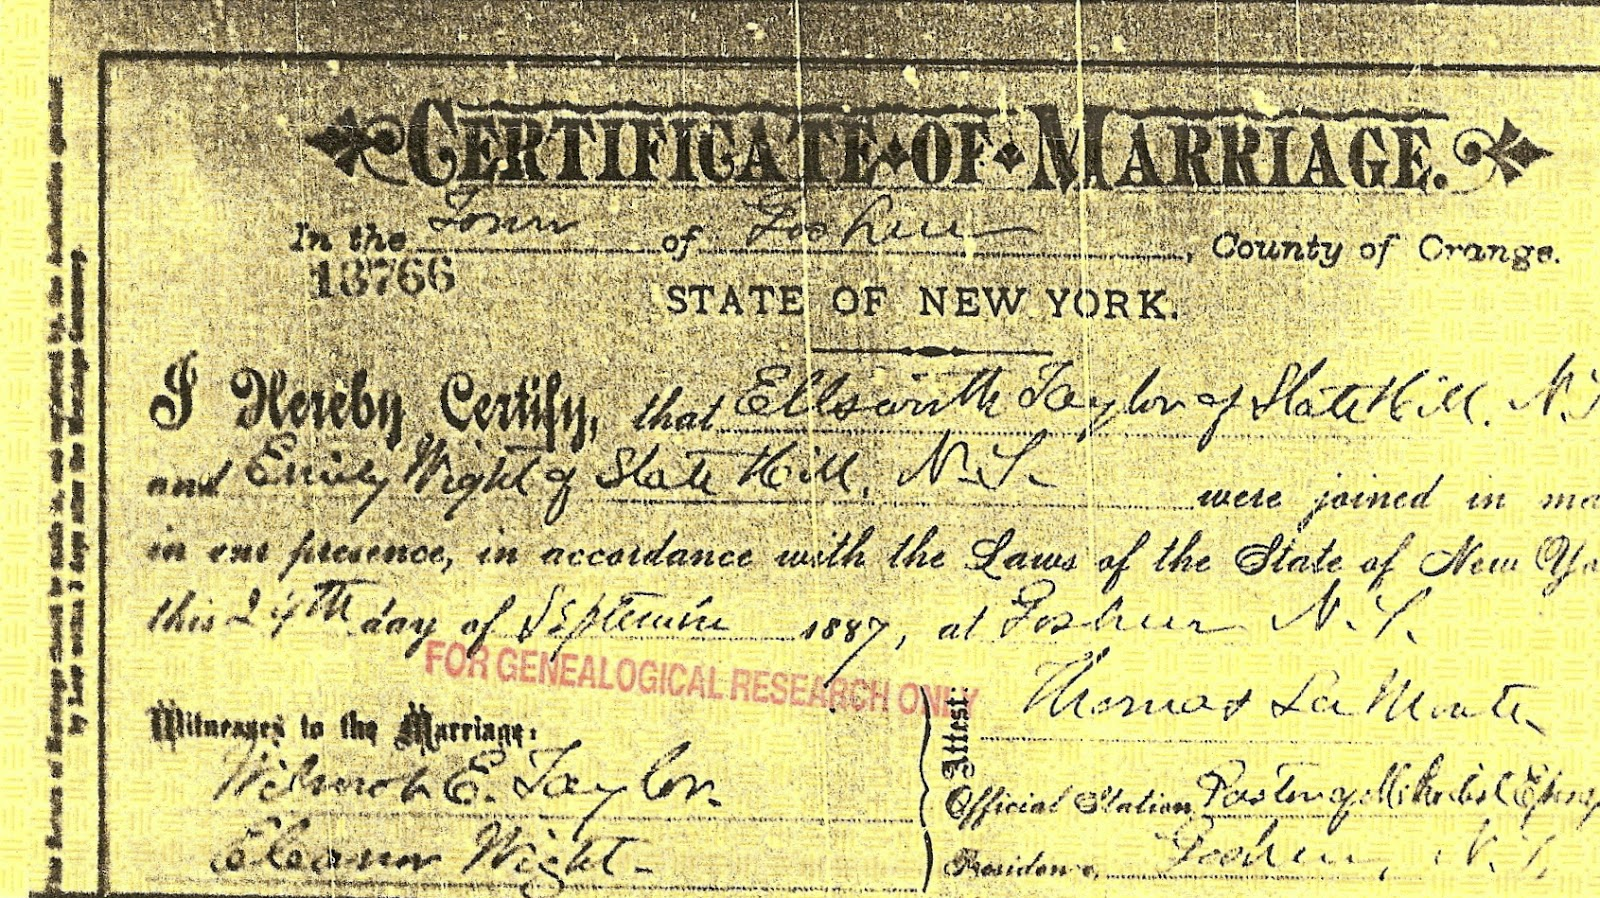 Certificate of Marriage Ellsworth Taylor and Emily Wight Sept. 27, 1887